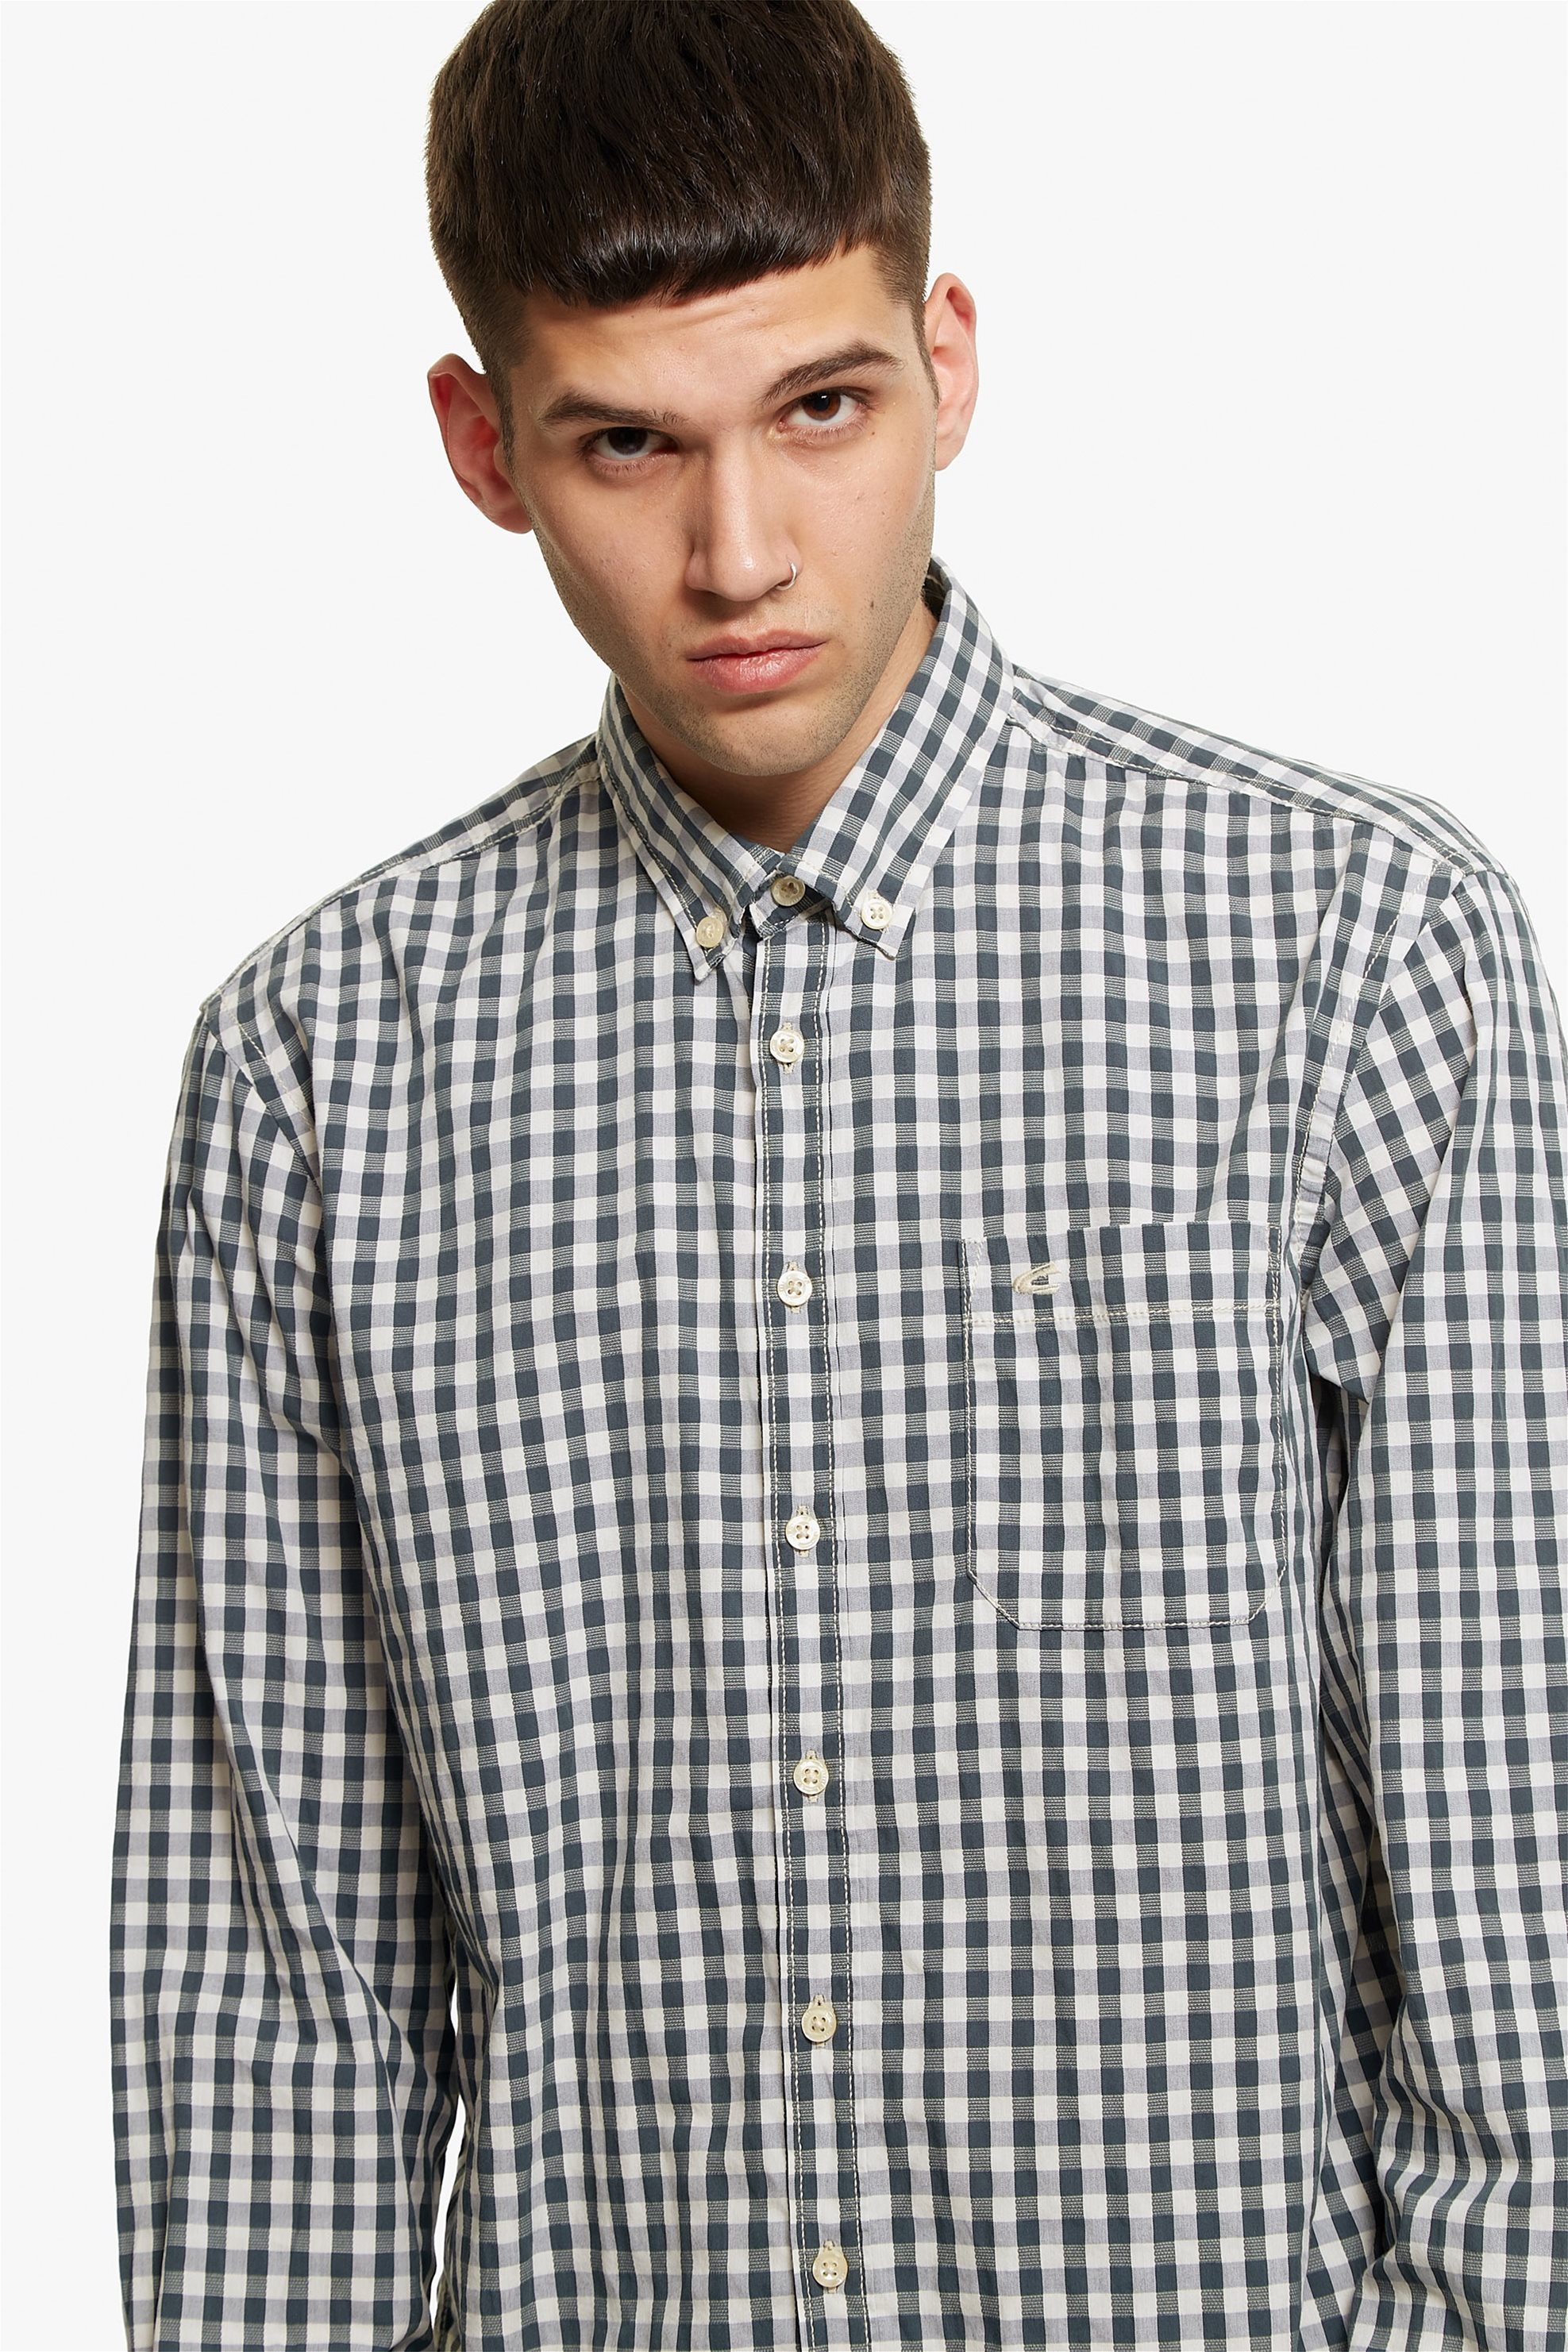 Camel Active ανδρικό καρό πουκάμισο Button down - CD-83-345040 - Ανθρακί ανδρασ   ρουχα   πουκάμισα   casual